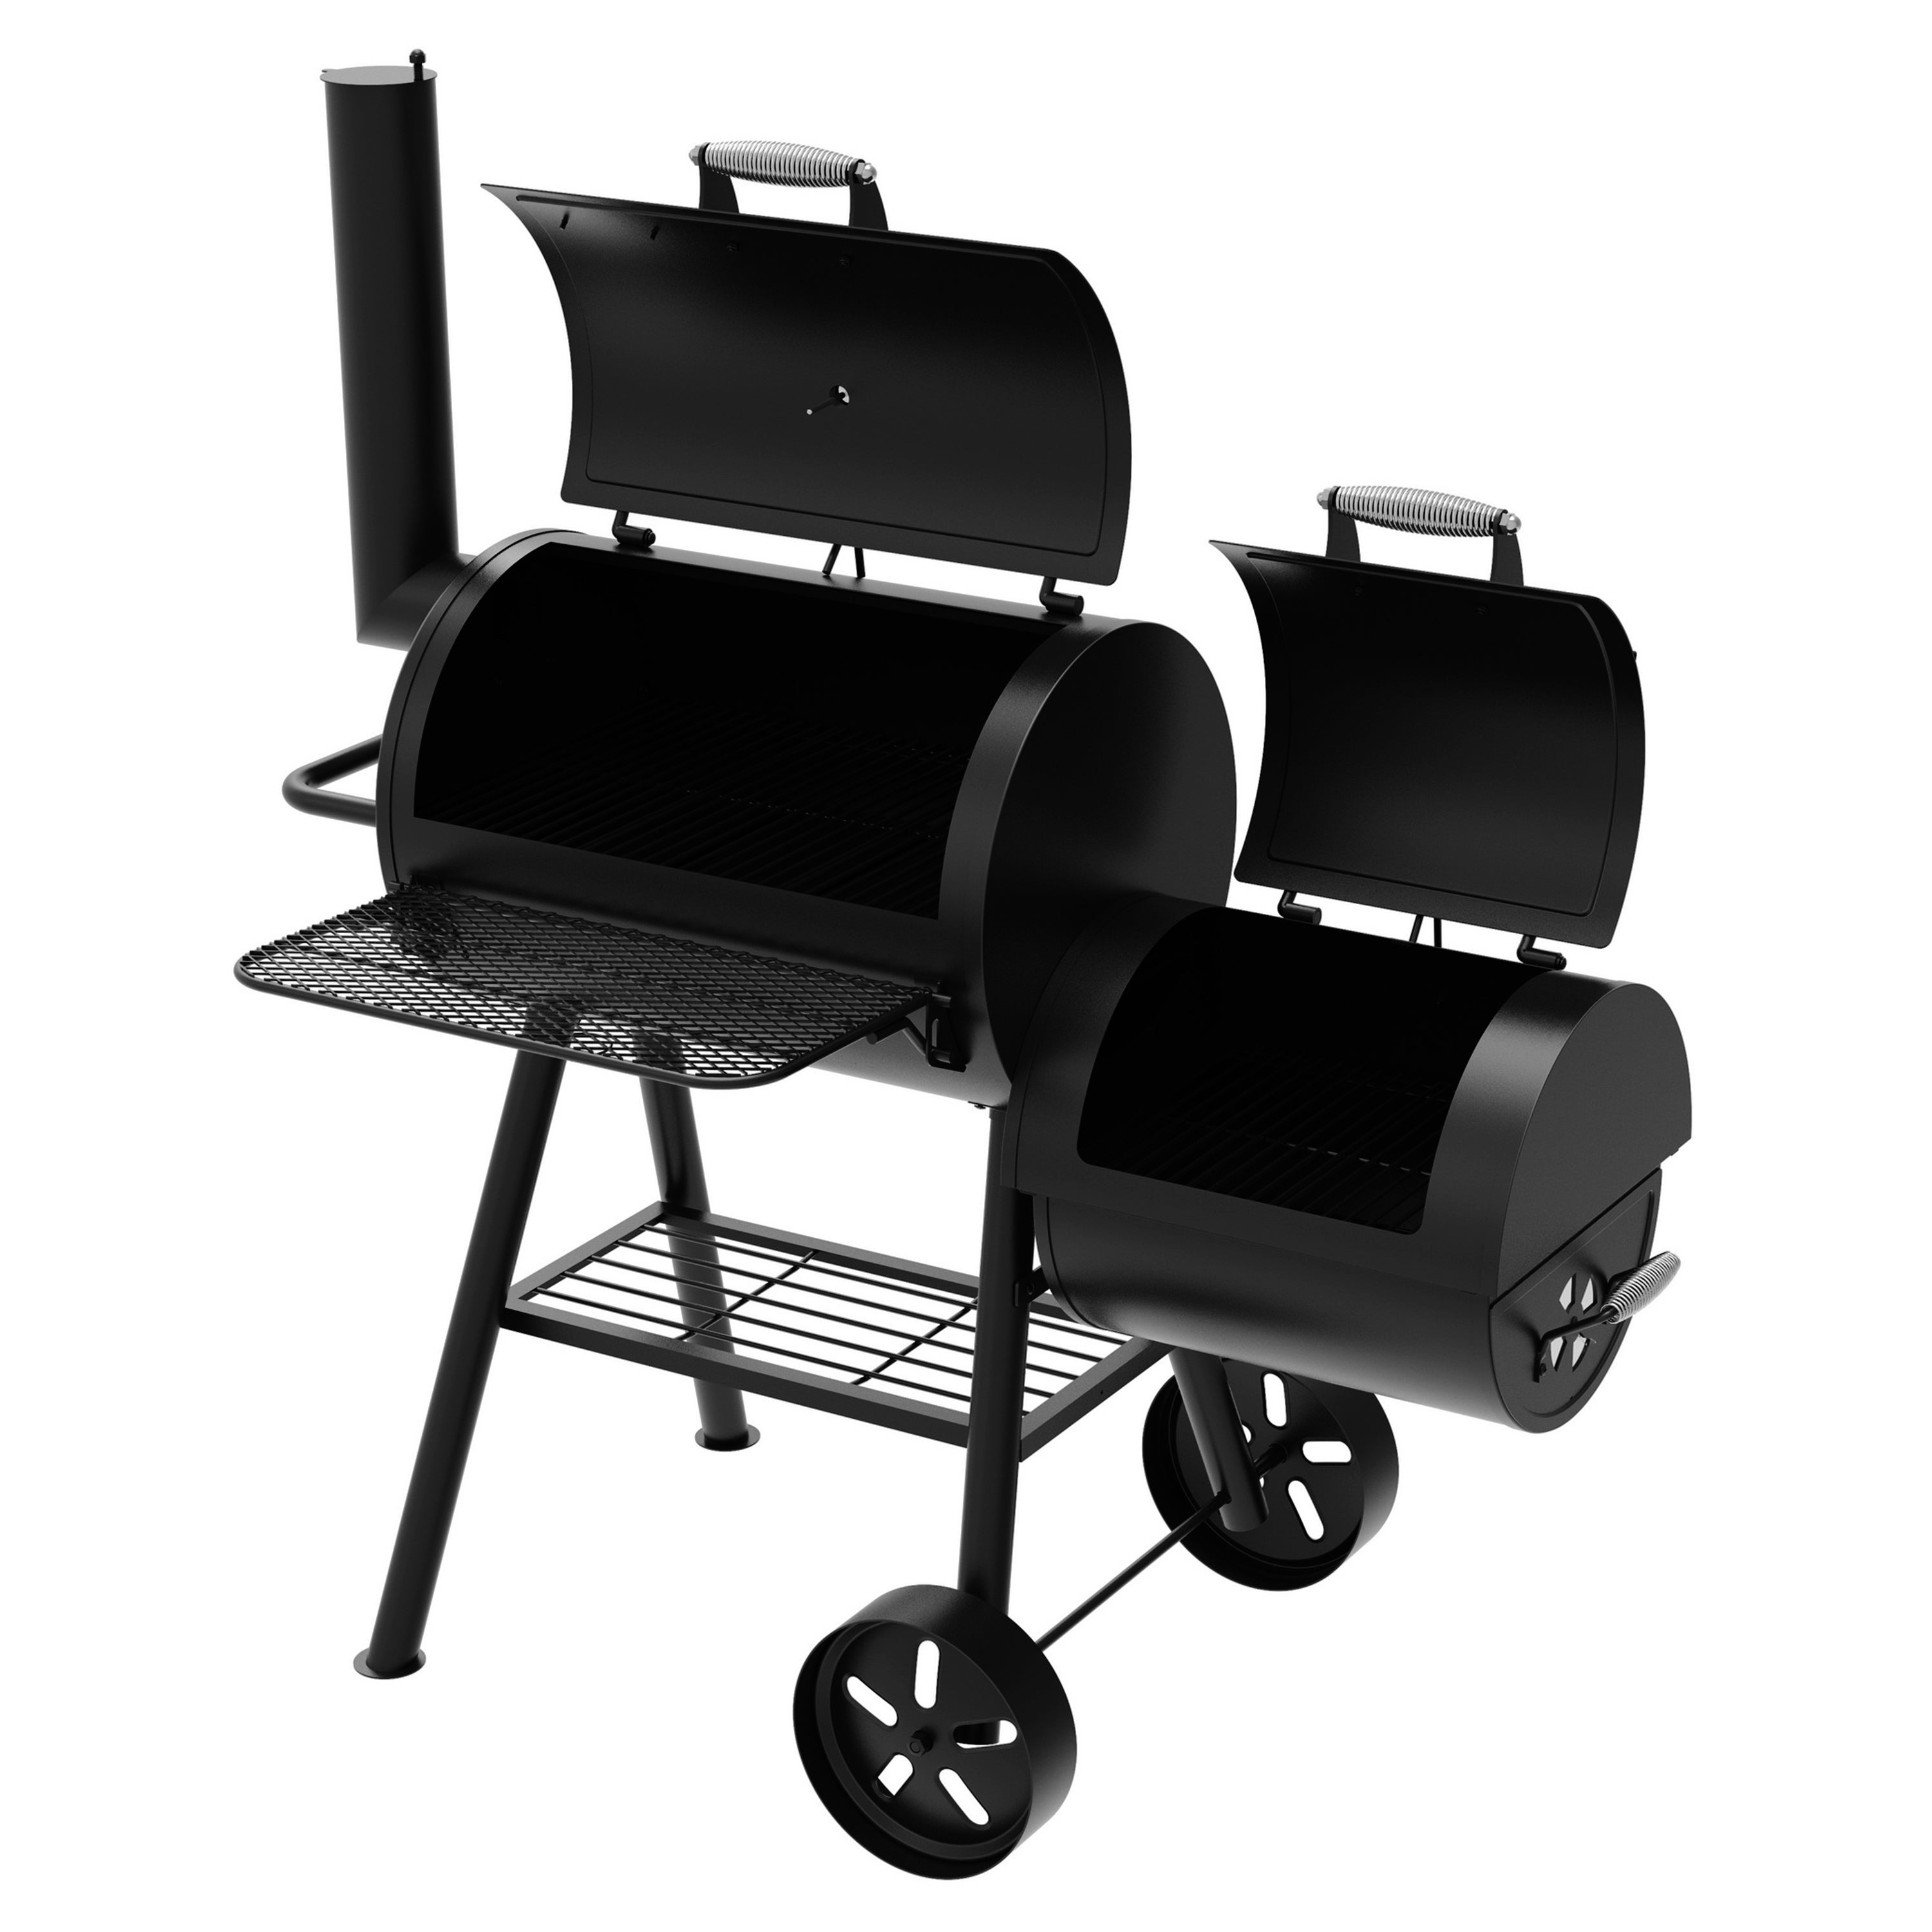 Dyna Glo Signature Series Dgss730cbo D Barrel Charcoal Grill And Side Firebox